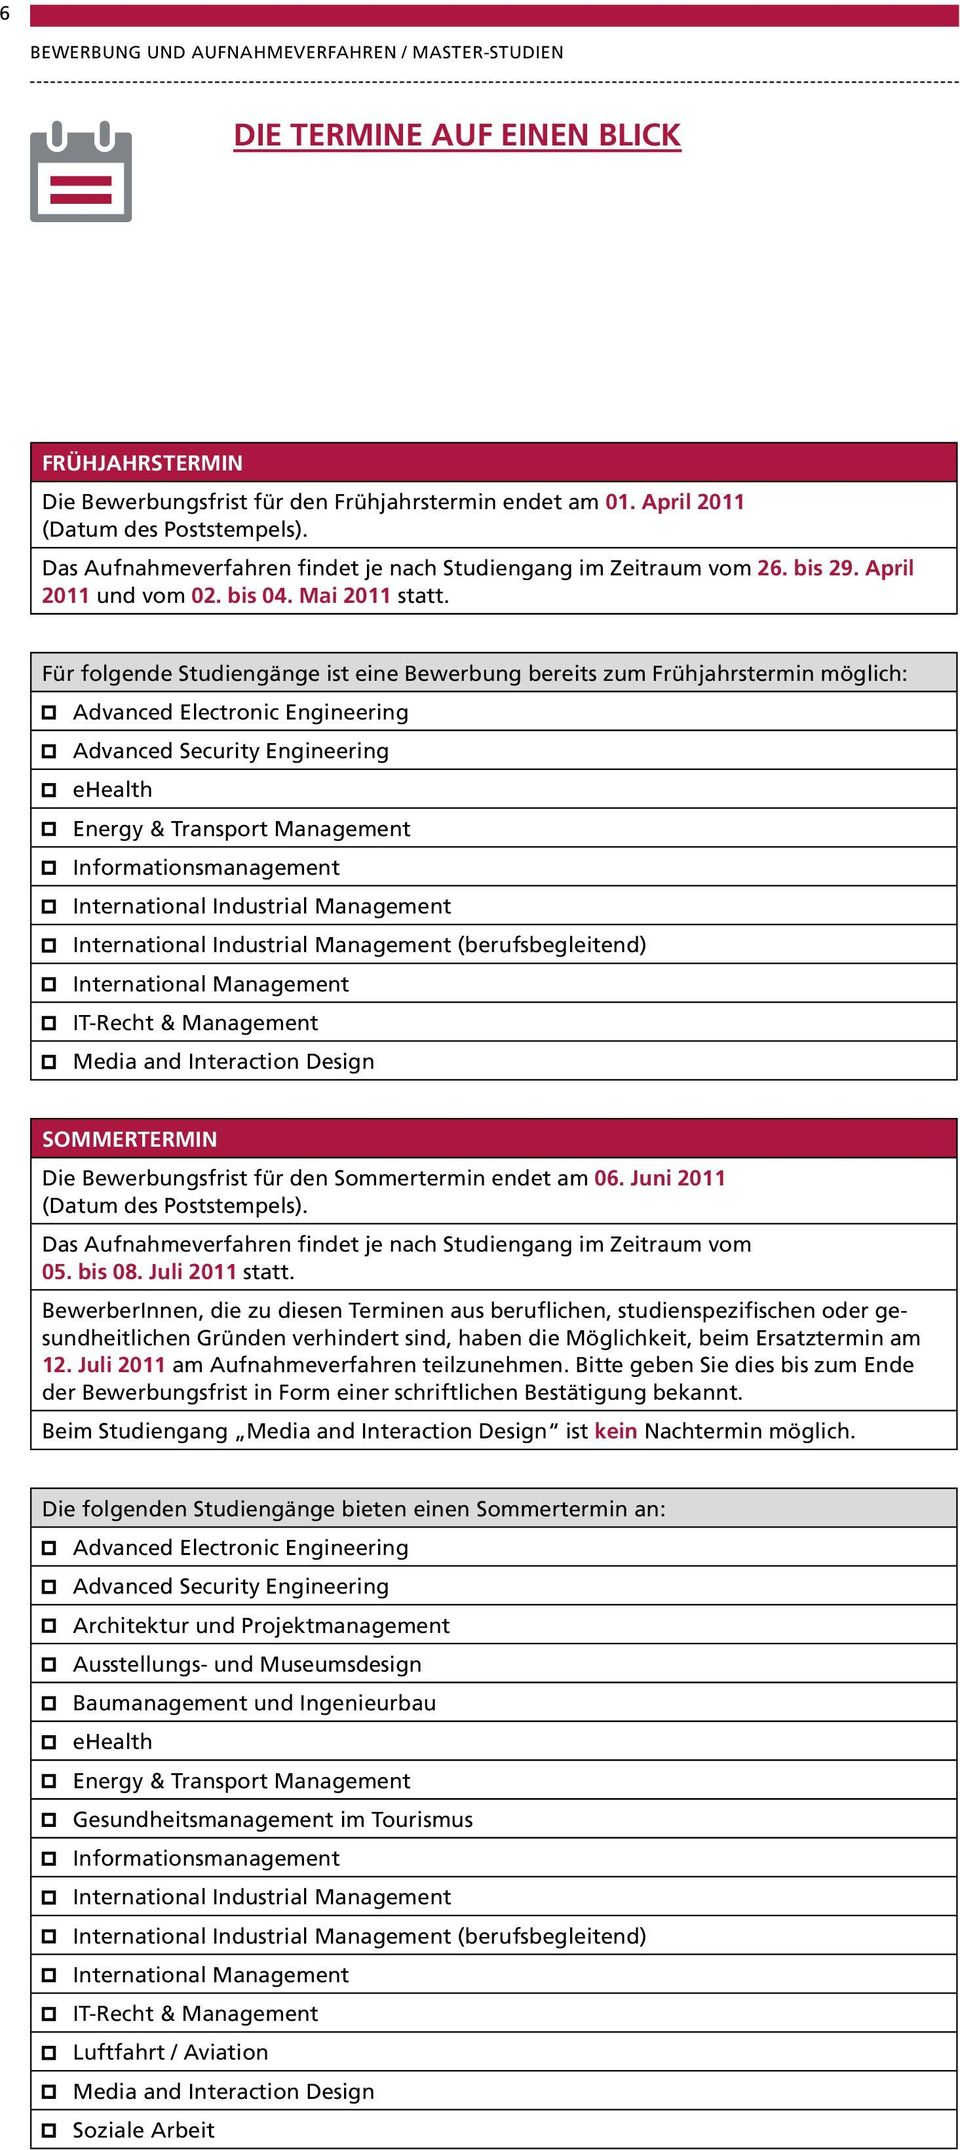 Für folgende Studiengänge ist eine Bewerbung bereits zum Frühjahrstermin möglich: Advanced Electronic Engineering Advanced Security Engineering ehealth Energy & Transport Management